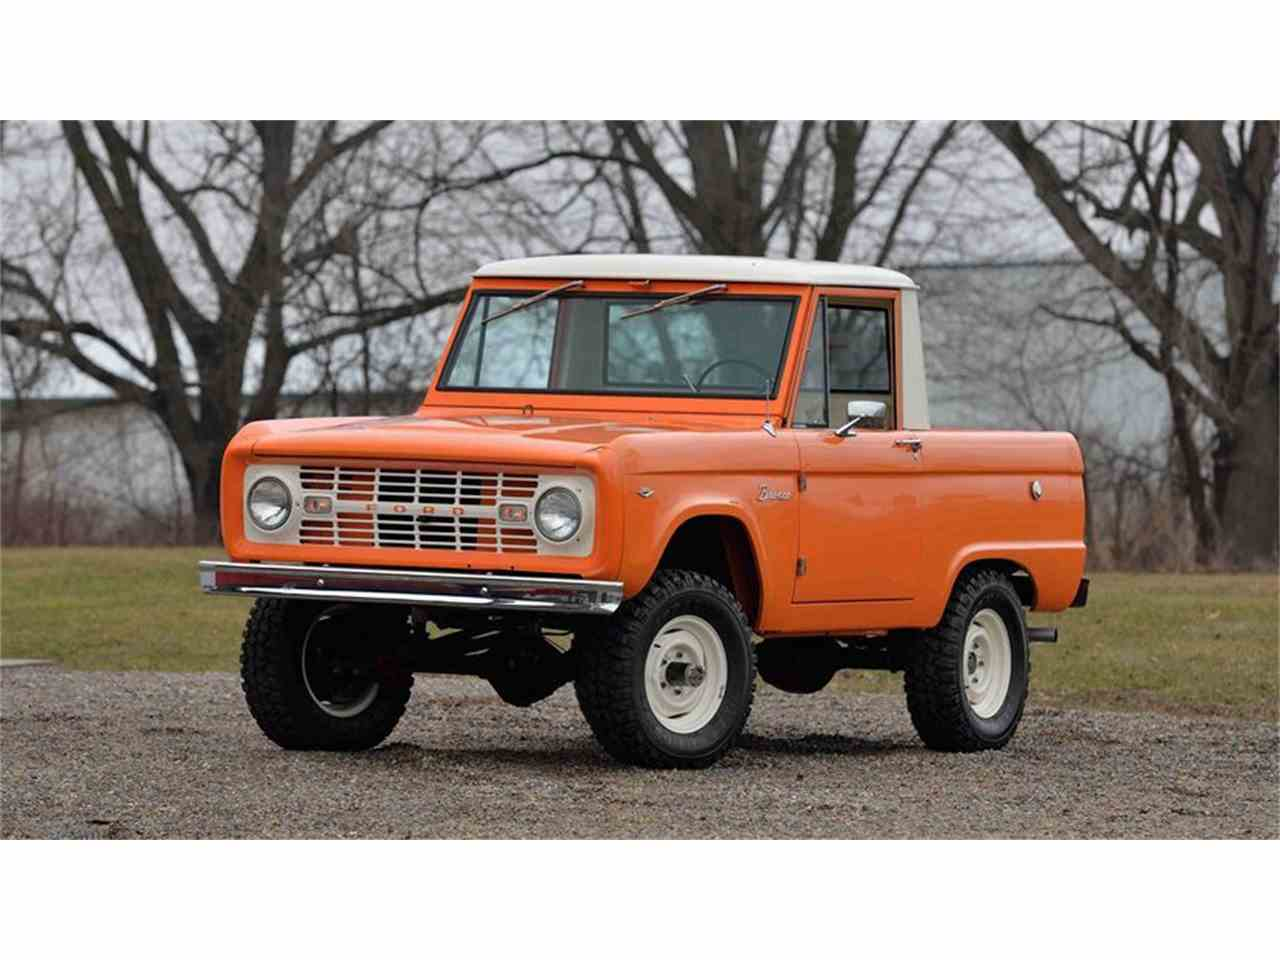 Wyoming Ford Dealers >> 1967 Ford Bronco U14 for Sale | ClassicCars.com | CC-969269